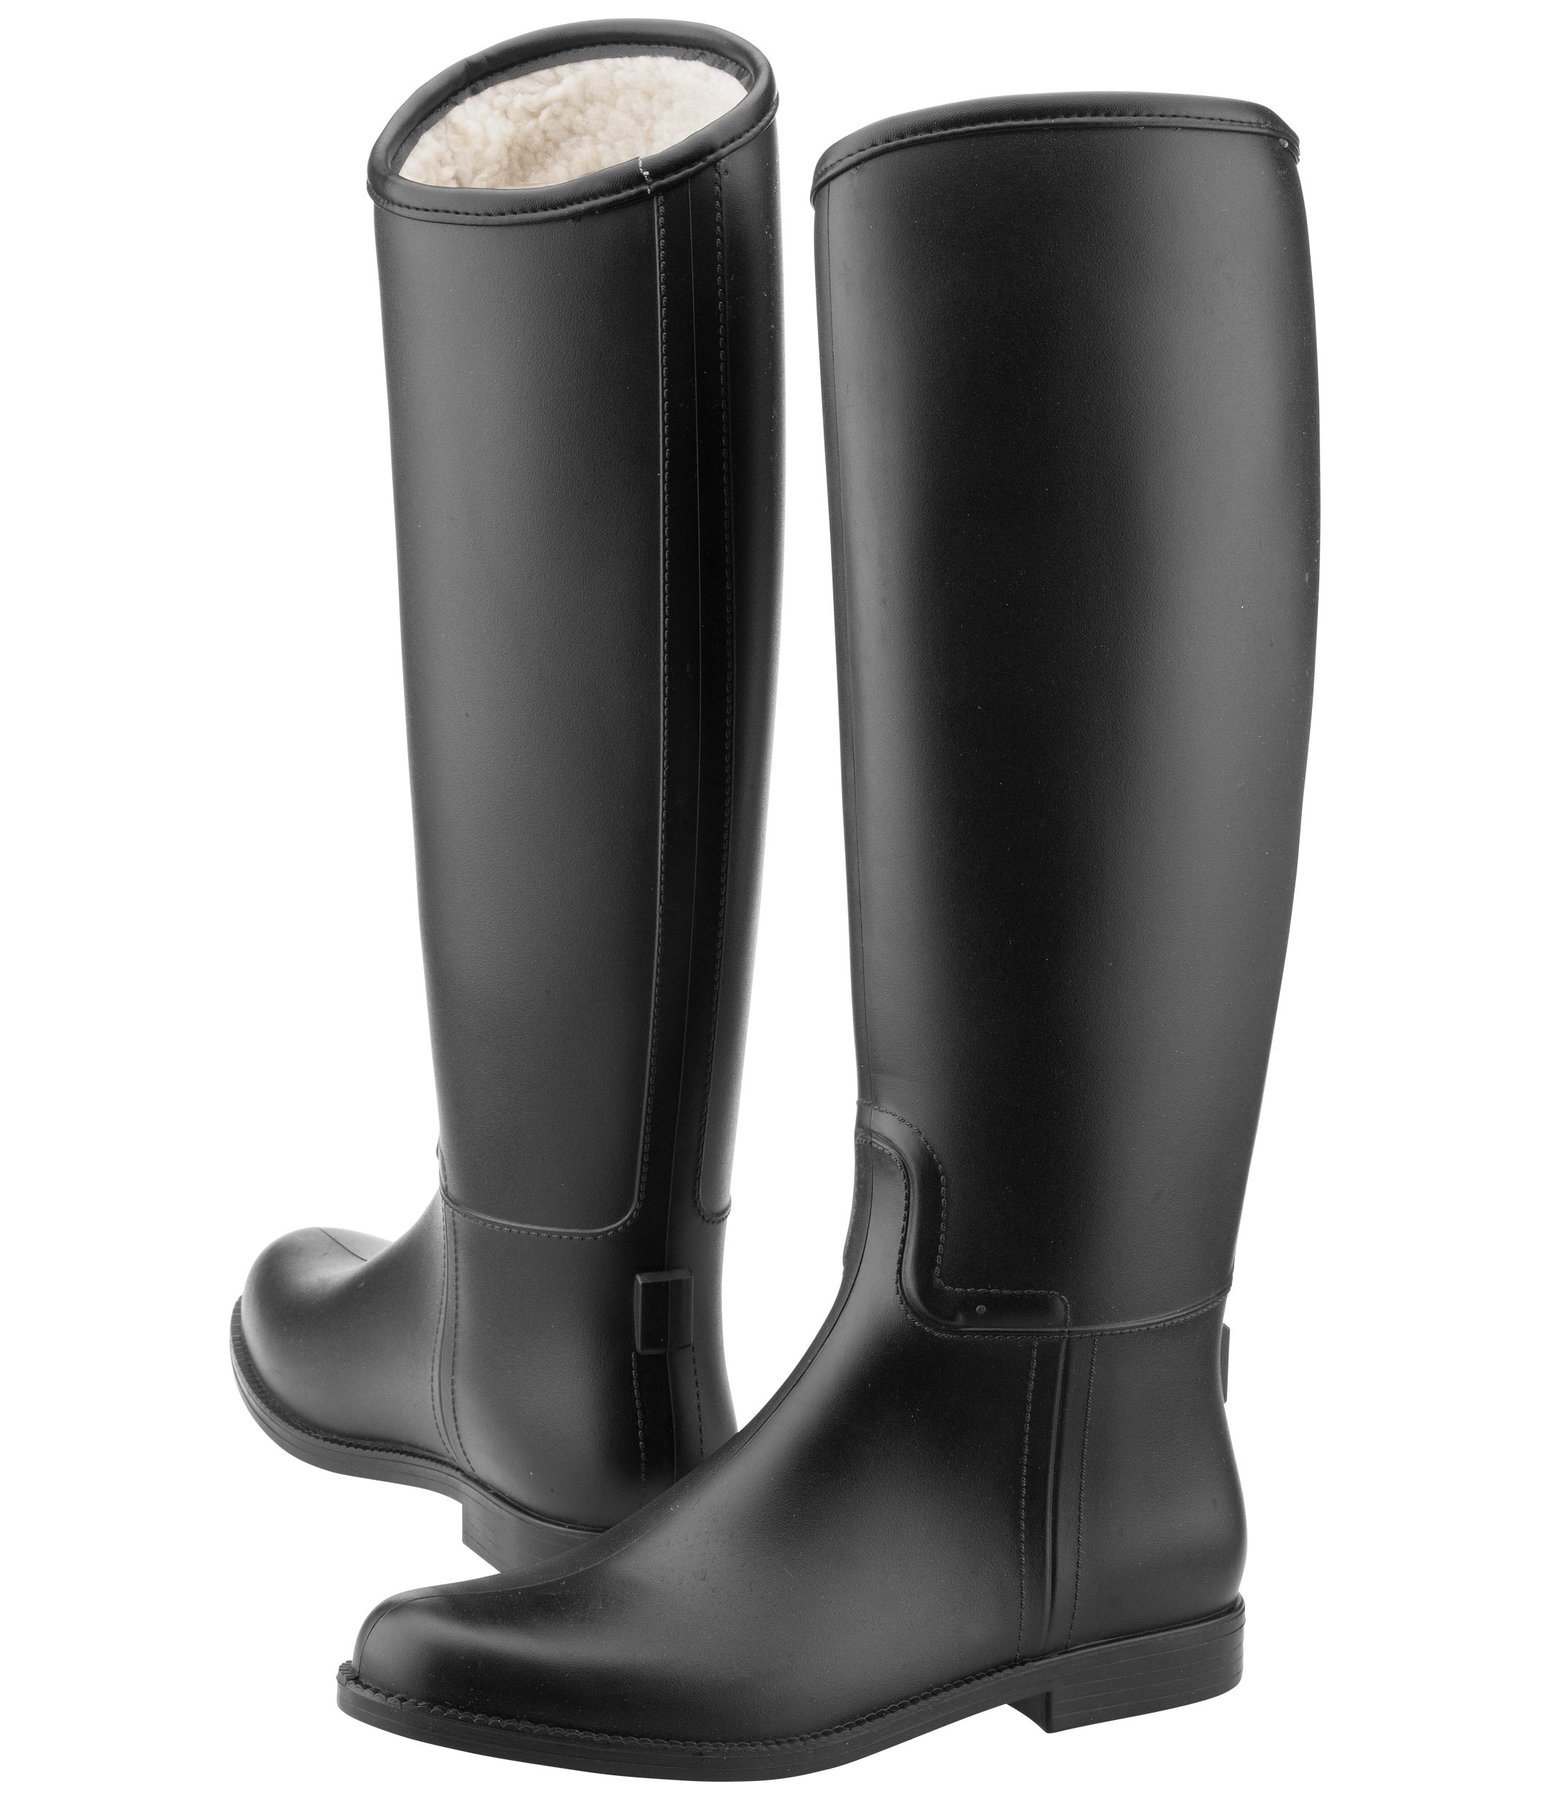 Winter Riding Boots for Children Start Factory Seconds